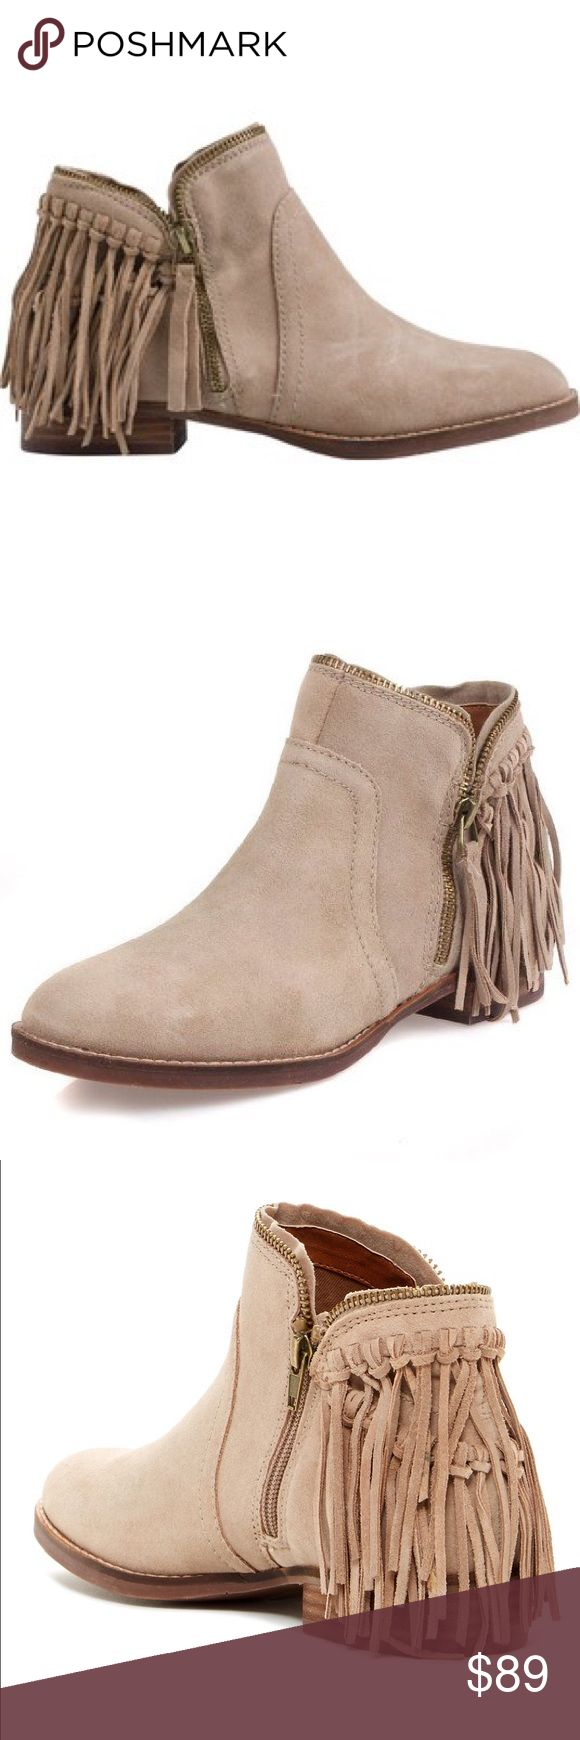 Dolce Vita Taupe Fisher Bootie Flat Bootie with fringe detailing on heel and zip closure. Only worn a few times. Dolce Vita Shoes Ankle Boots & Booties